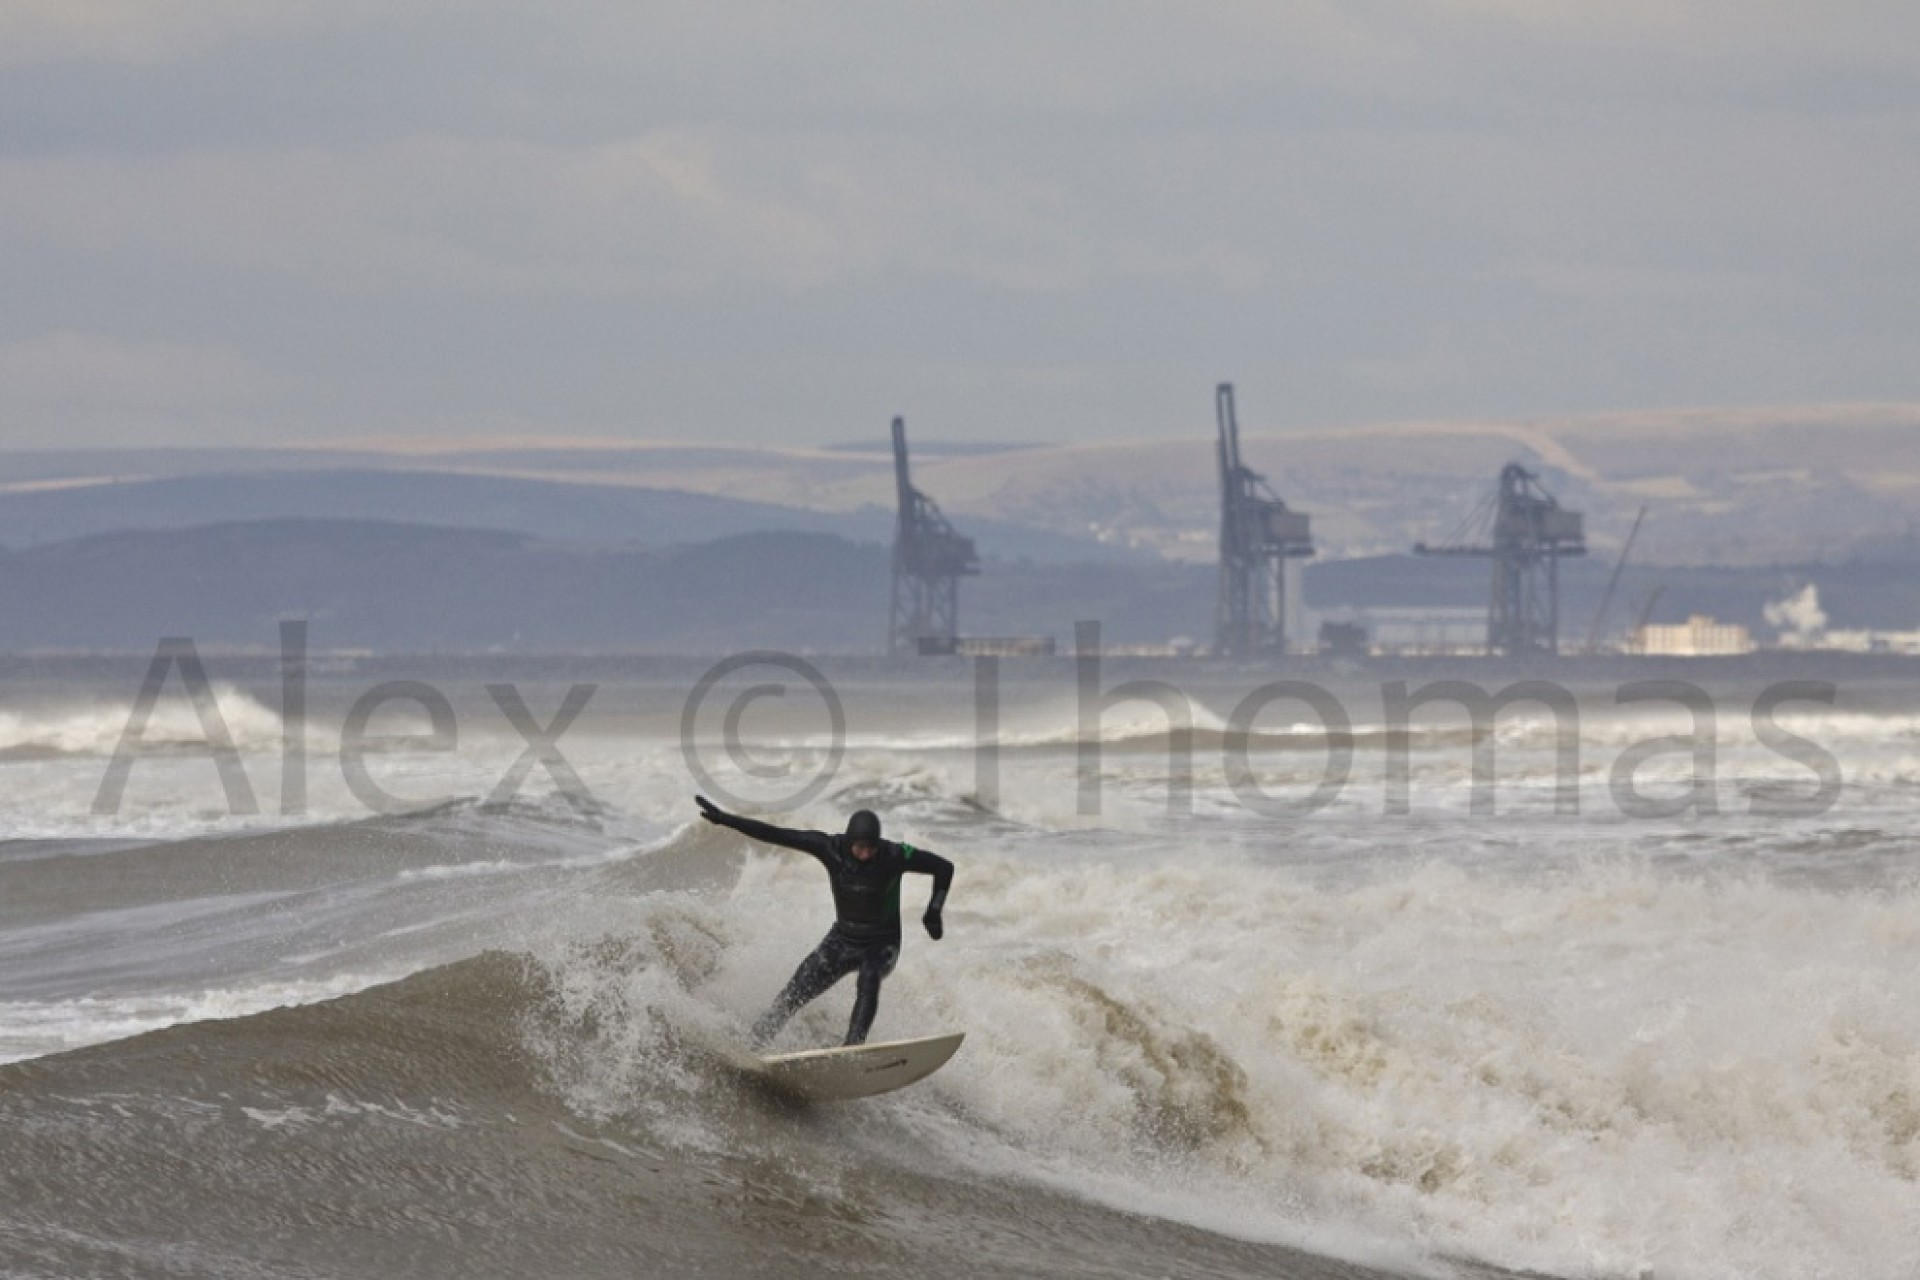 Alex Thomas's photo of Porthcawl - Coney Beach